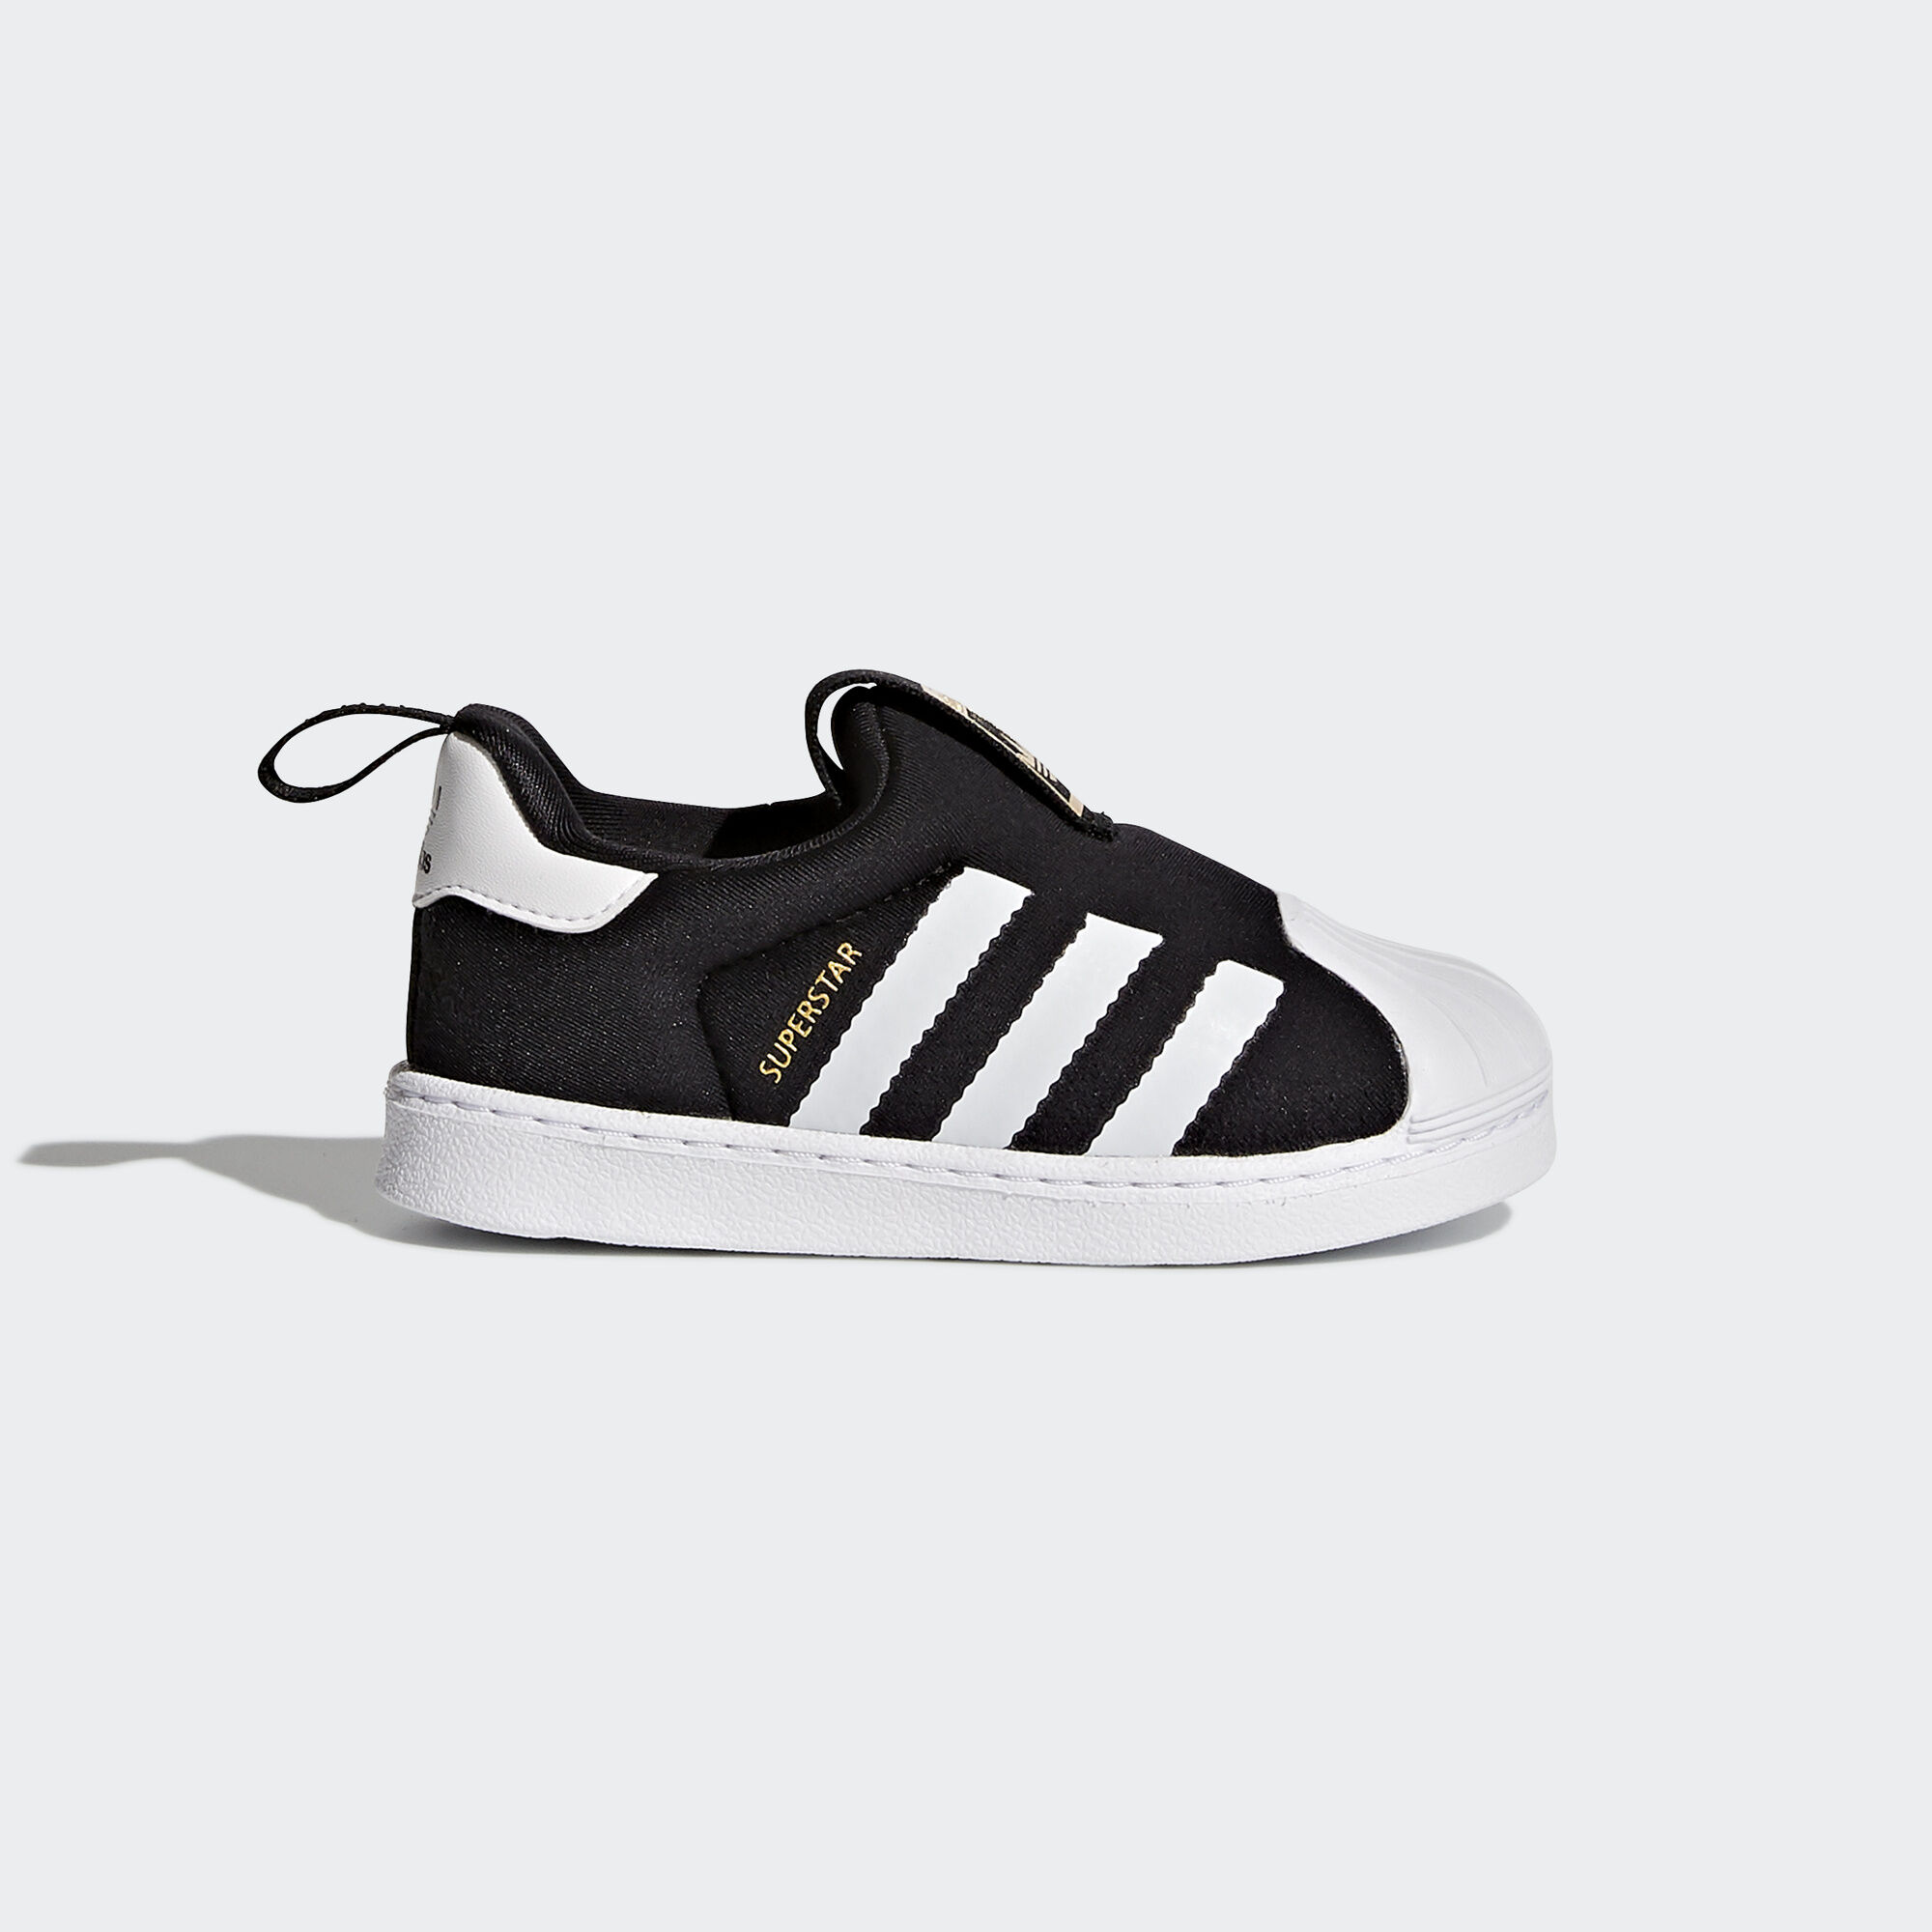 buy adidas superstar shoes nz